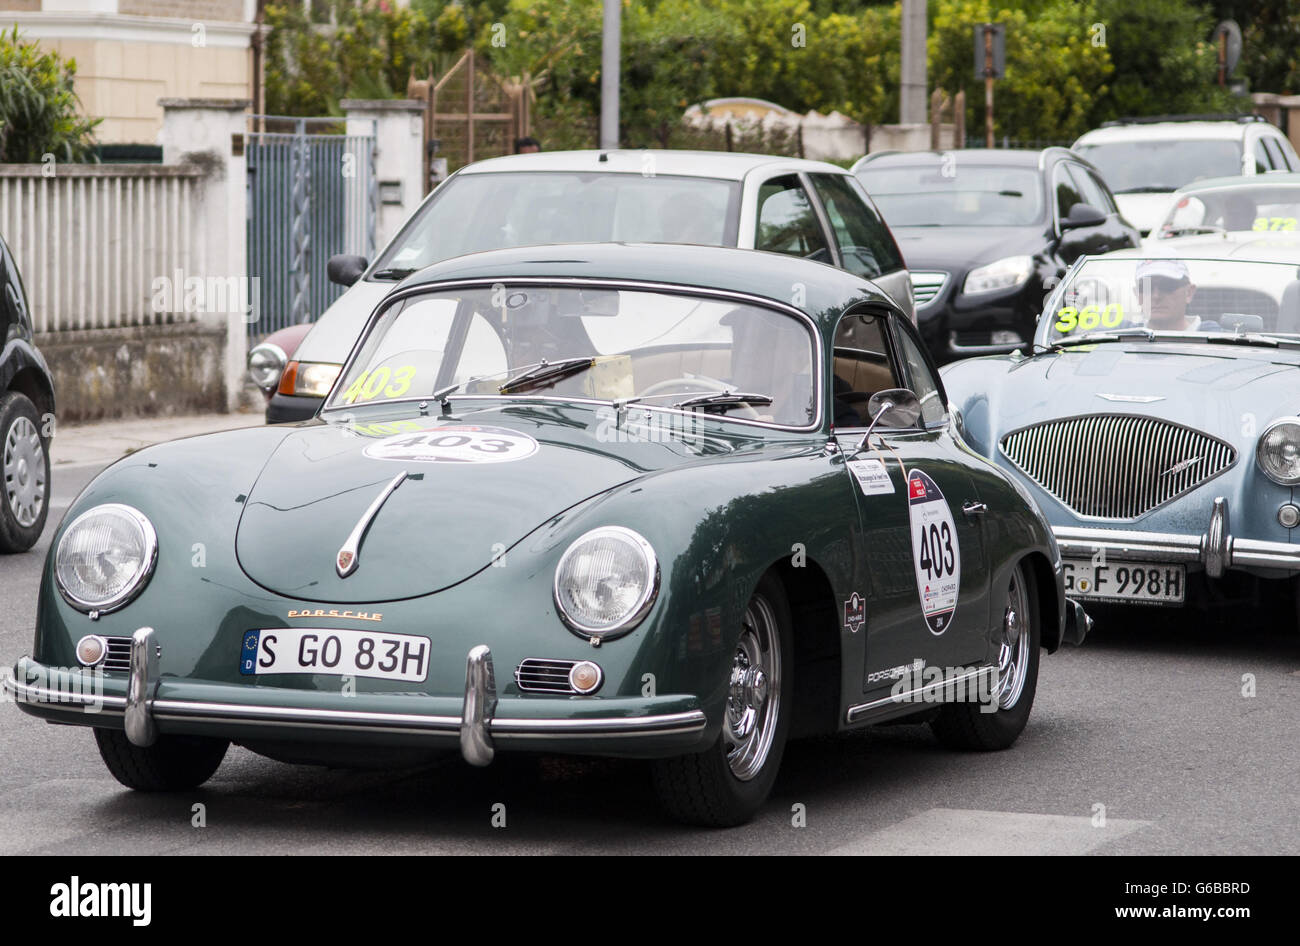 FANO, ITALY - MAY 16: Porsche 356 A 1600 old racing car in rally ...